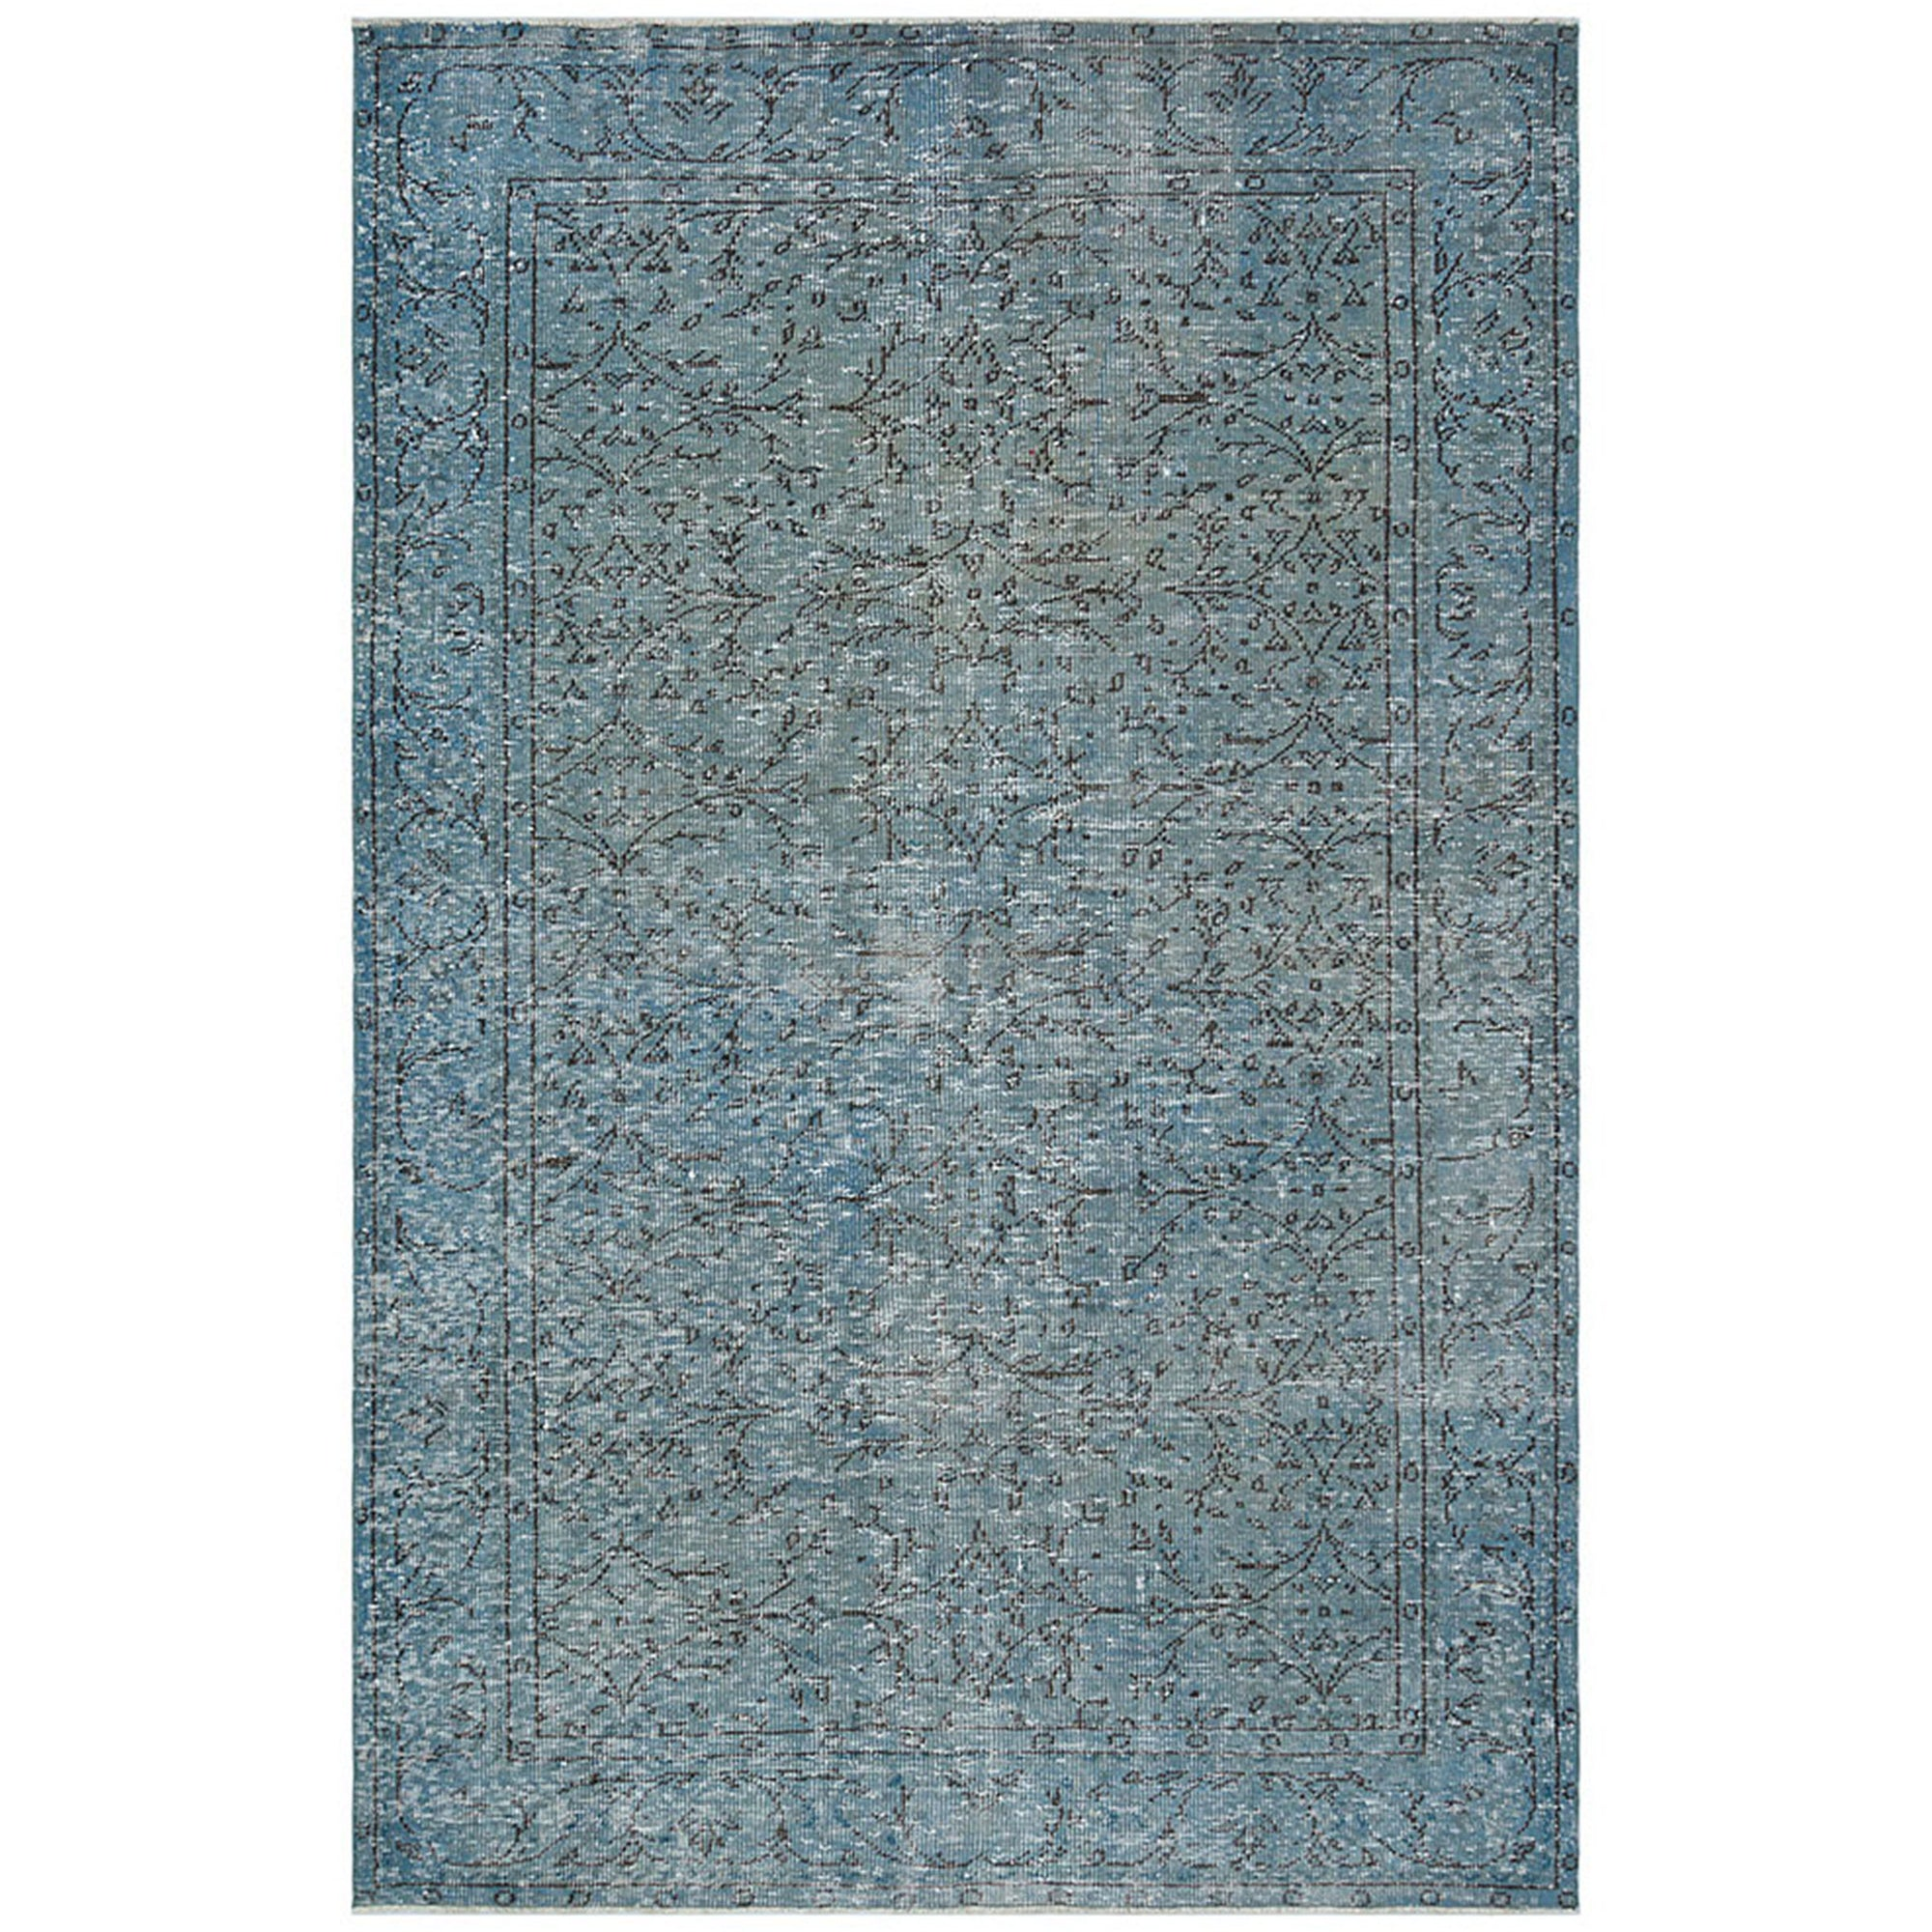 173 X 266 Anatolian Hand Knotted Carpet Vintage Style 60N2076 -  173 × 266 سجادة أناضولية معقودة يدويًا - Shop Online Furniture and Home Decor Store in Dubai, UAE at ebarza